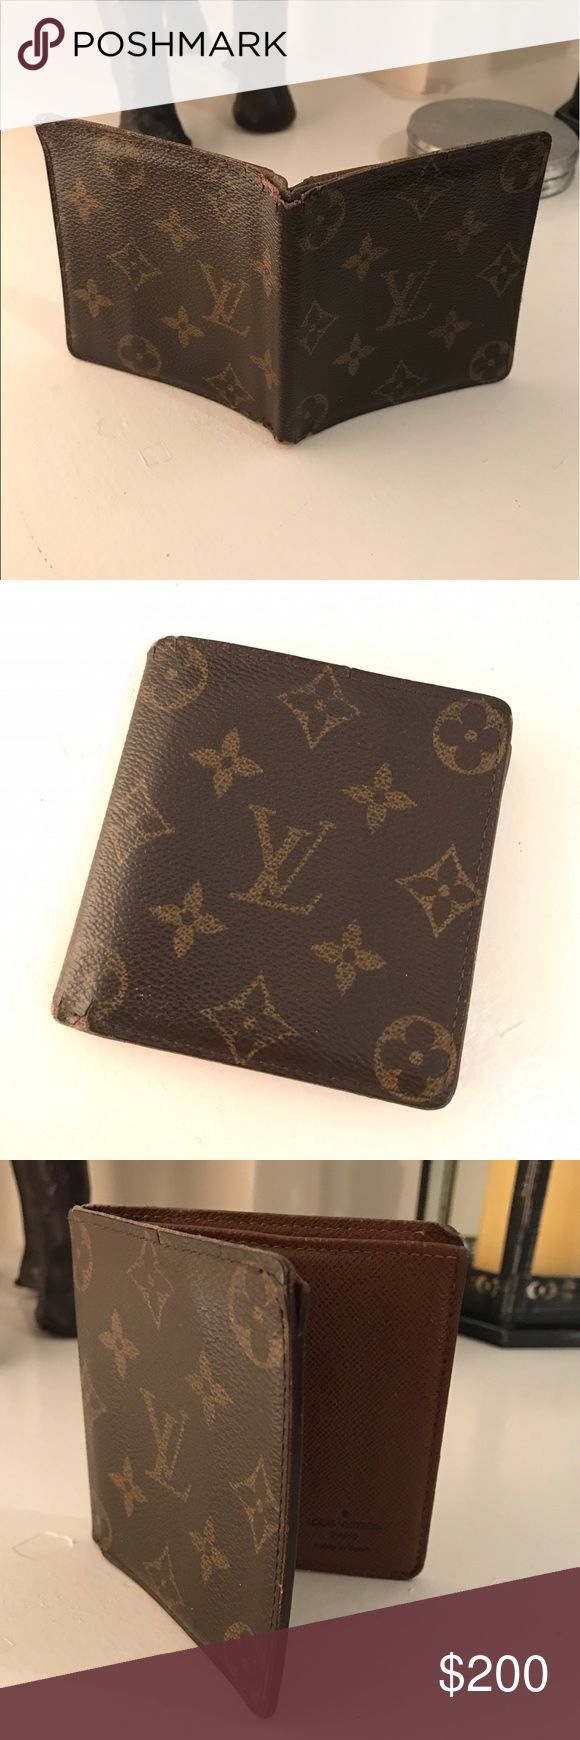 💯 Authentic Louis Vuitton Men's wallet 100% authentic Louis Vuitton men's wallet. Classic monogram. Used condition, slight cracking and tearing on corners as shown in pictures. Completely functional and has a lot of life left. Louis Vuitton Bags Wallets